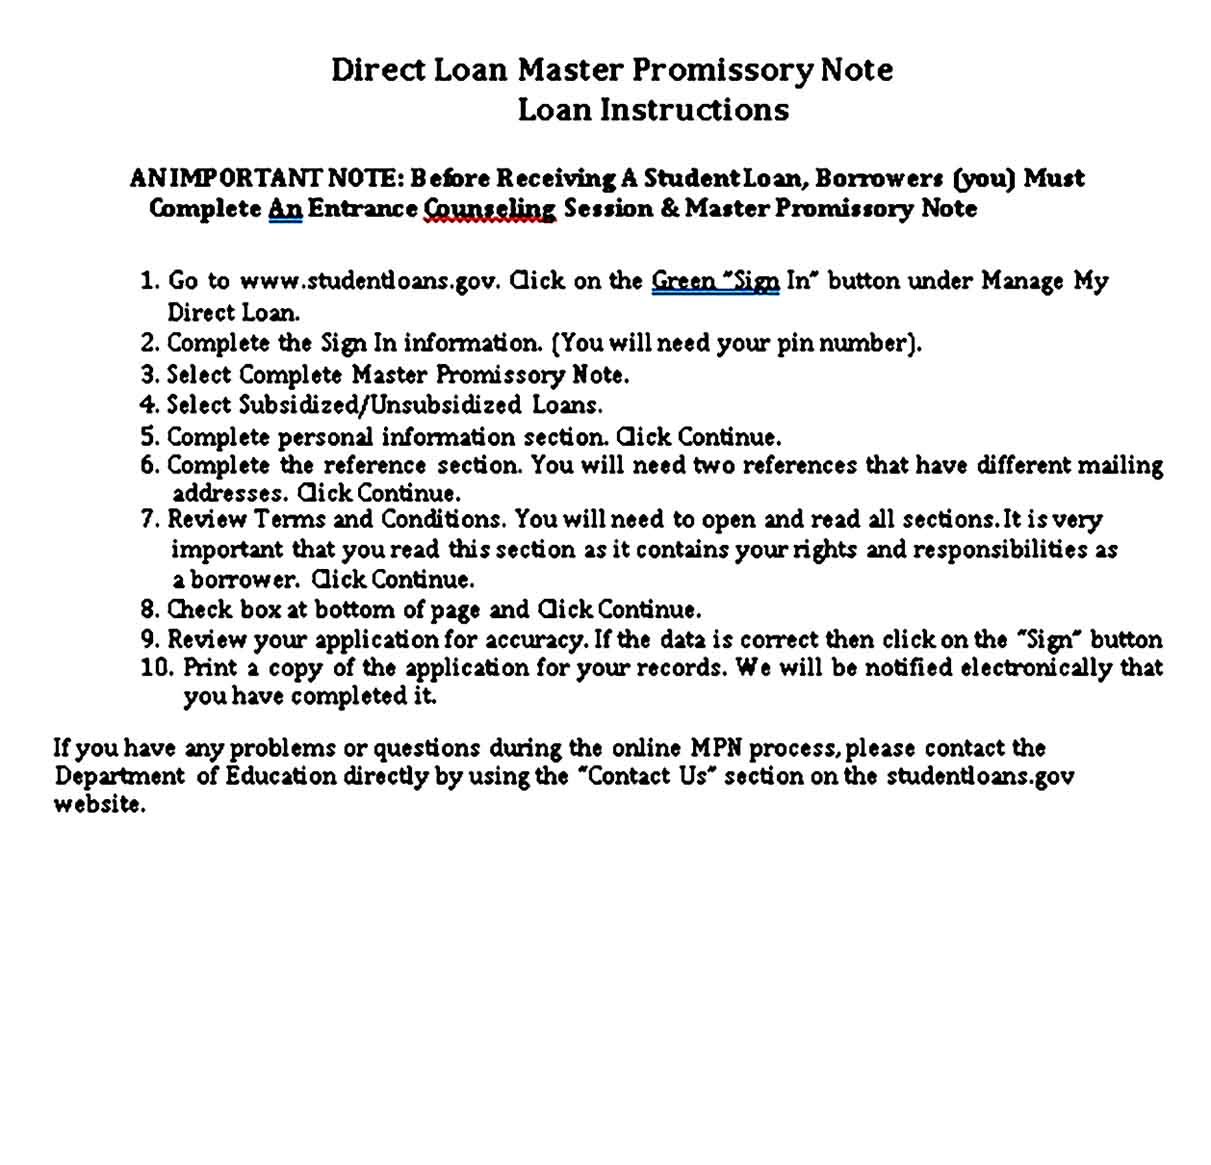 Direct Loan Master Promissory Note